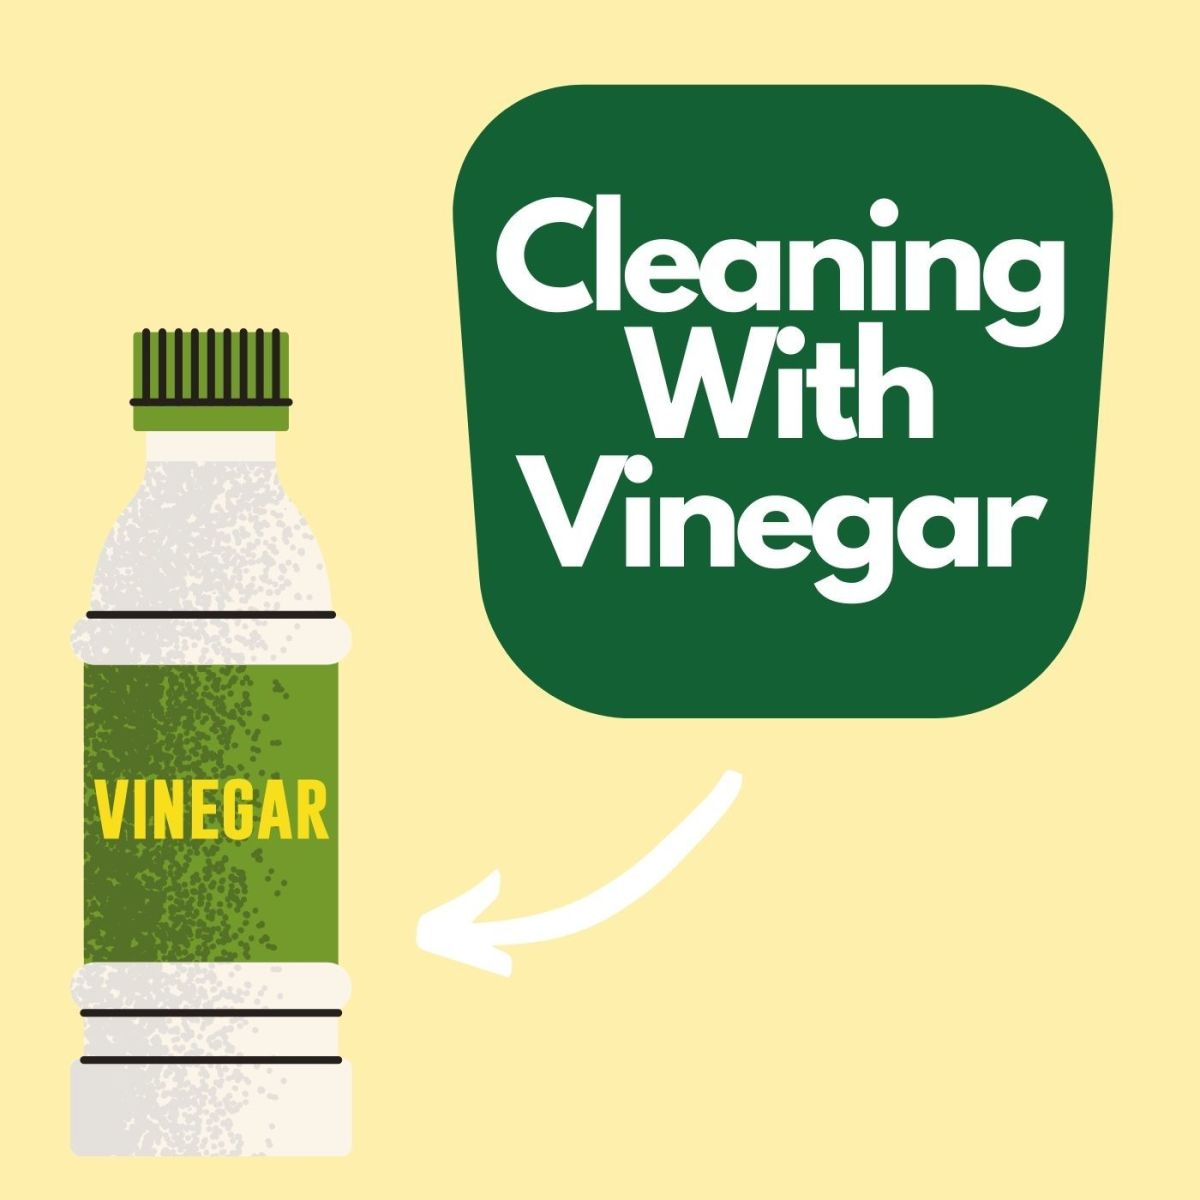 Cleaning with vinegar has many advantages.